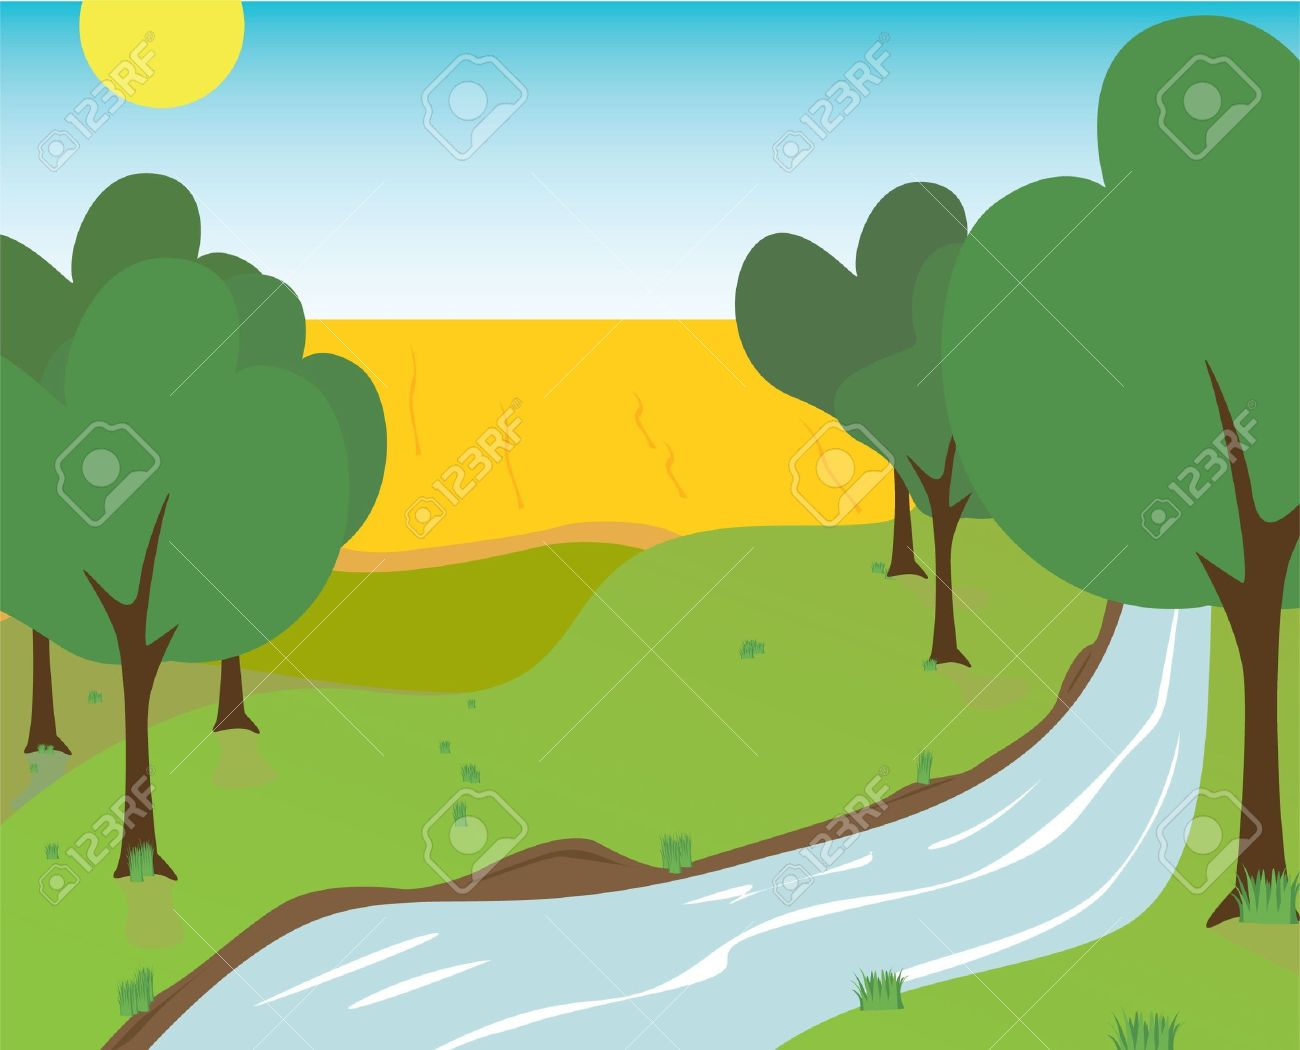 Creek Cliparts Free Download Clip Art.